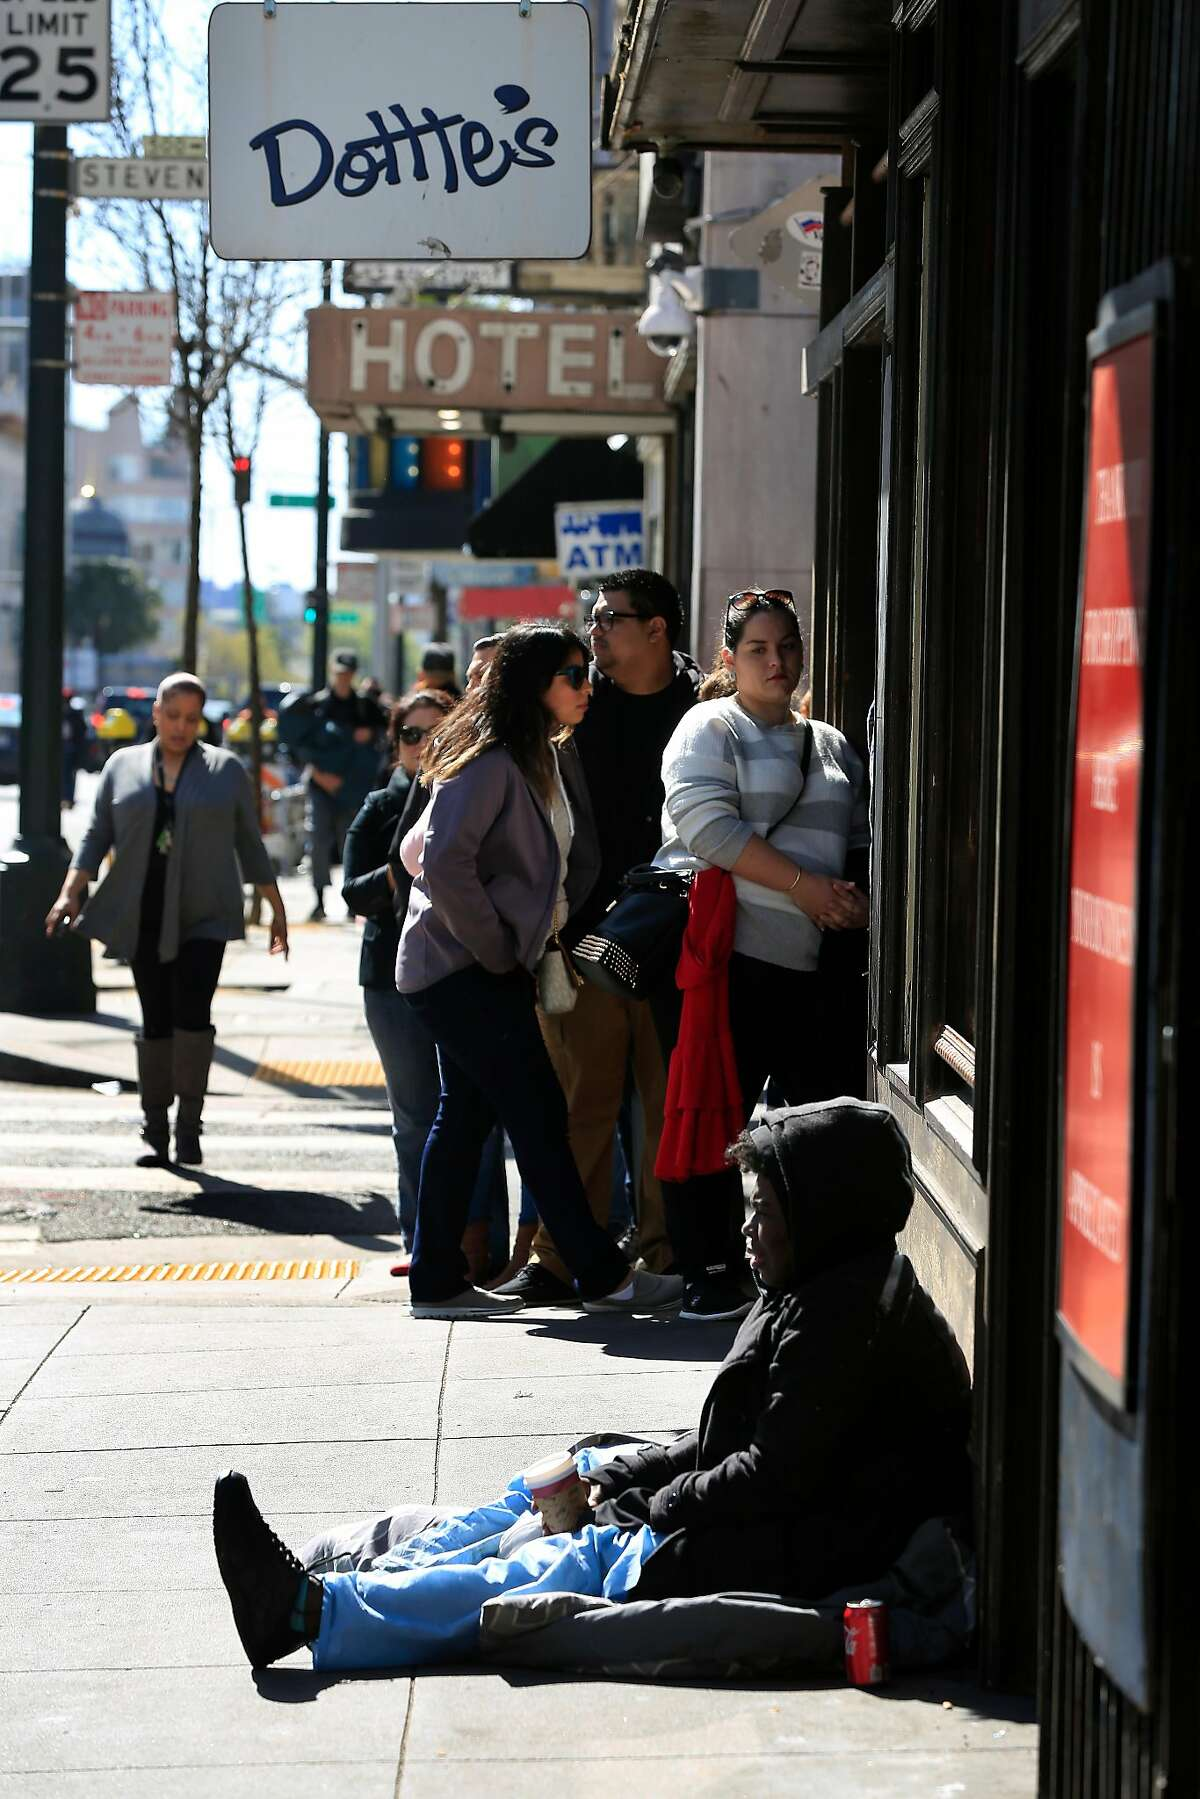 Aisha Matthews sits on the sidewalk next to a line of people waiting in line to enter Dottie's True Blue Cafe on 6th Street on Friday, April 13, 2018, in San Francisco, Calif. Matthews says she has been homeless for about 18 years.